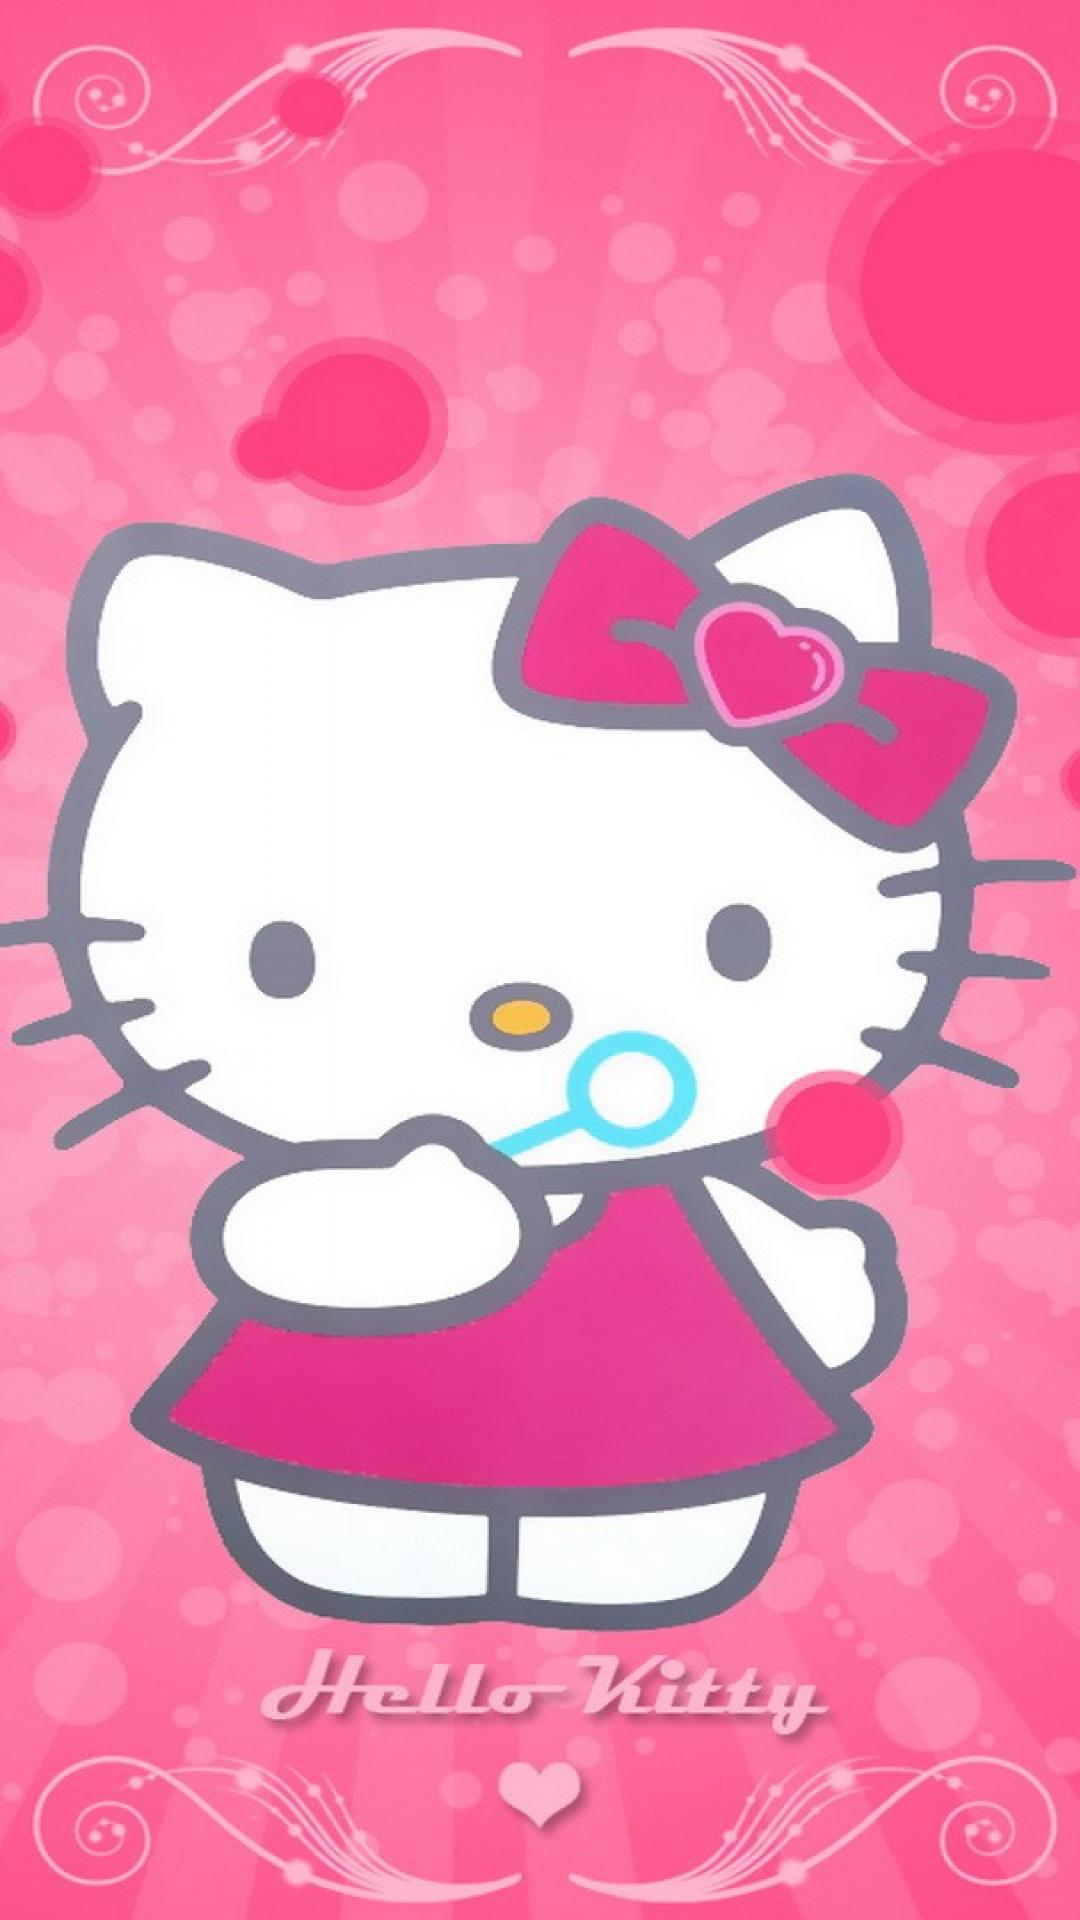 Free Download Pink Hello Kitty Wallpaper 132385 1080x1920 For Your Desktop Mobile Tablet Explore 75 Red Hello Kitty Wallpaper Hello Kitty Wallpaper Desktop Cute Hello Kitty Wallpaper Cute Kitty Wallpaper